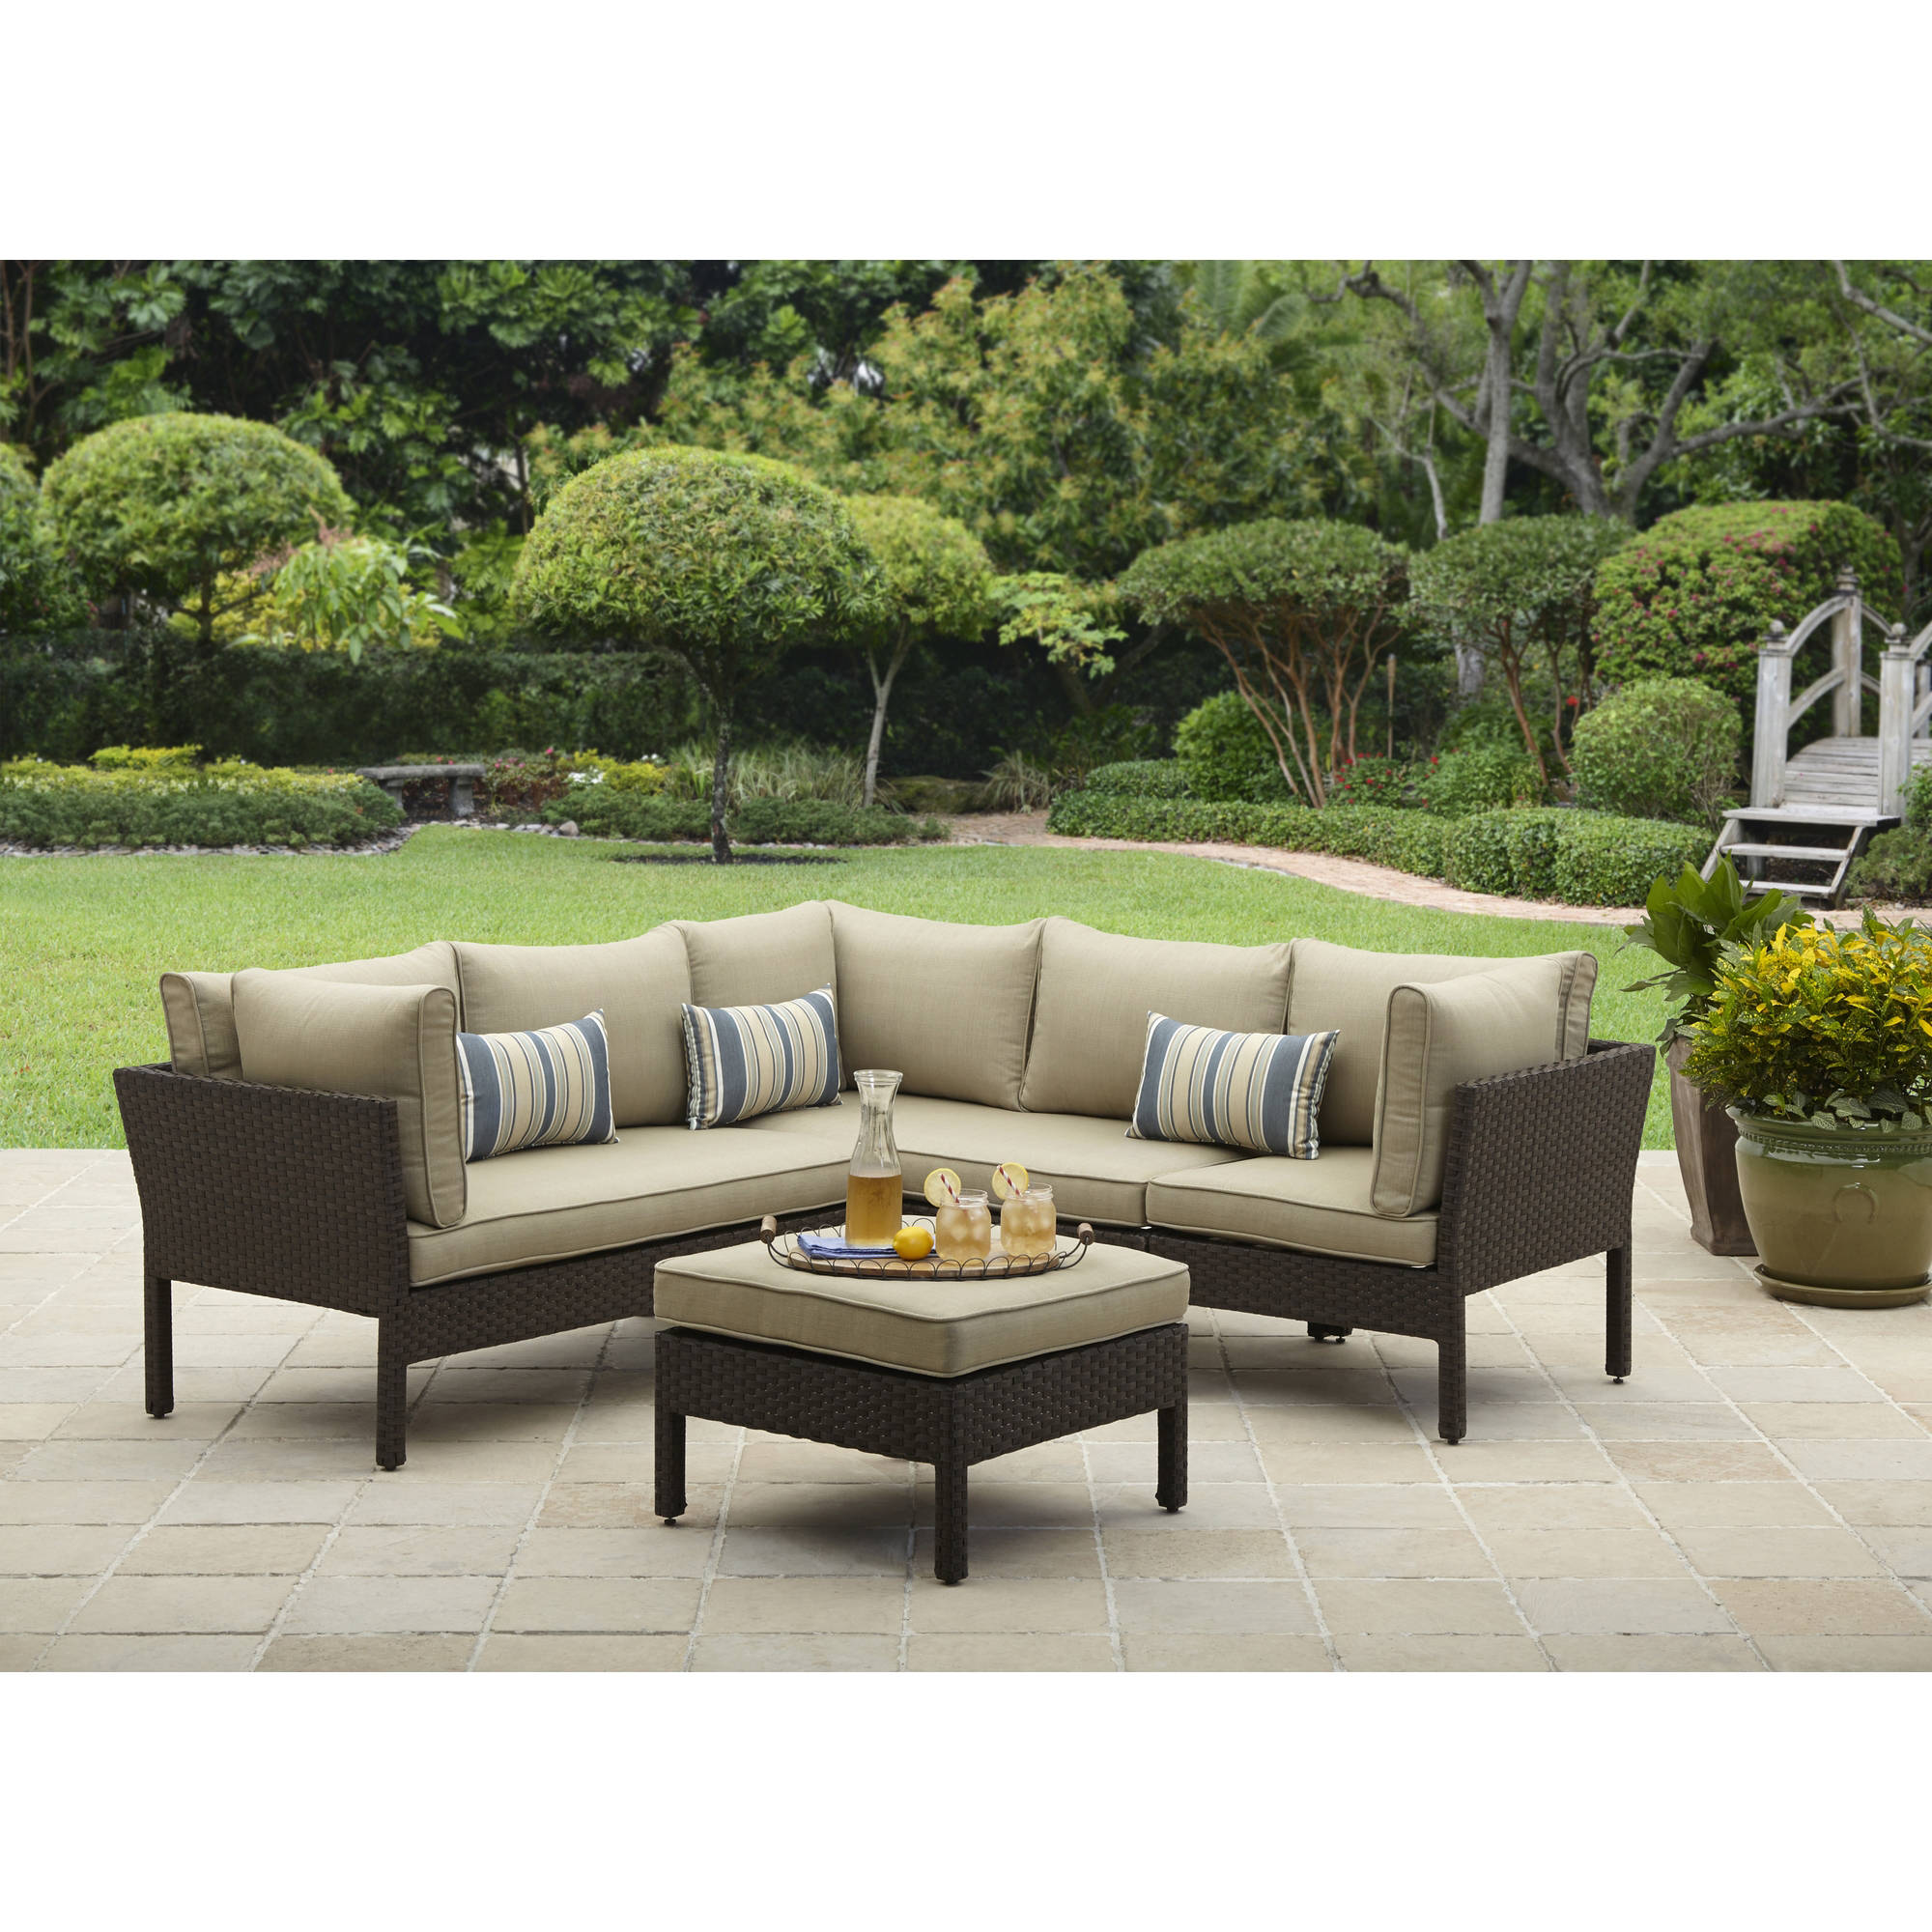 sc 1 st  Walmart : walmart sectional patio furniture - Sectionals, Sofas & Couches